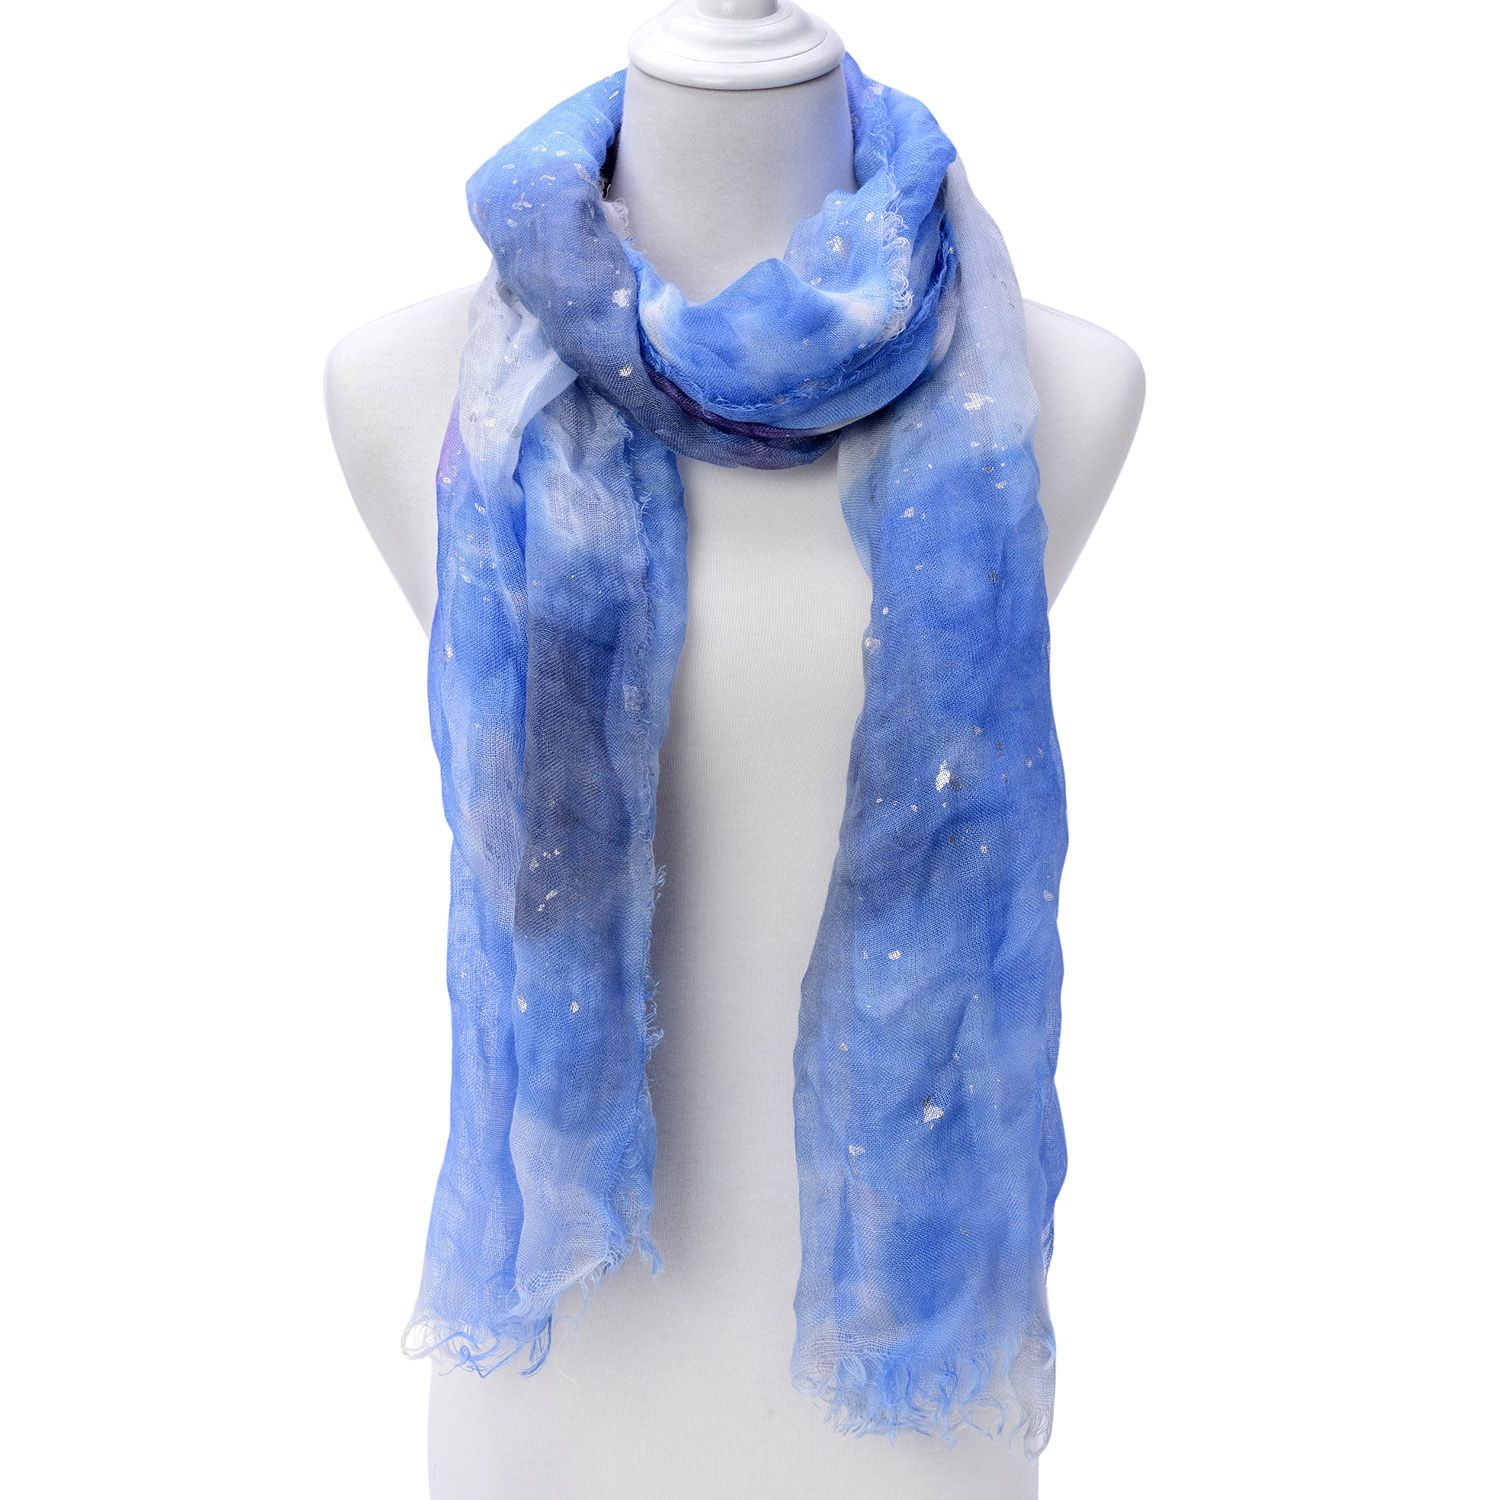 Blue 75% Linen and 25% Cotton Scarf (78x31 in)